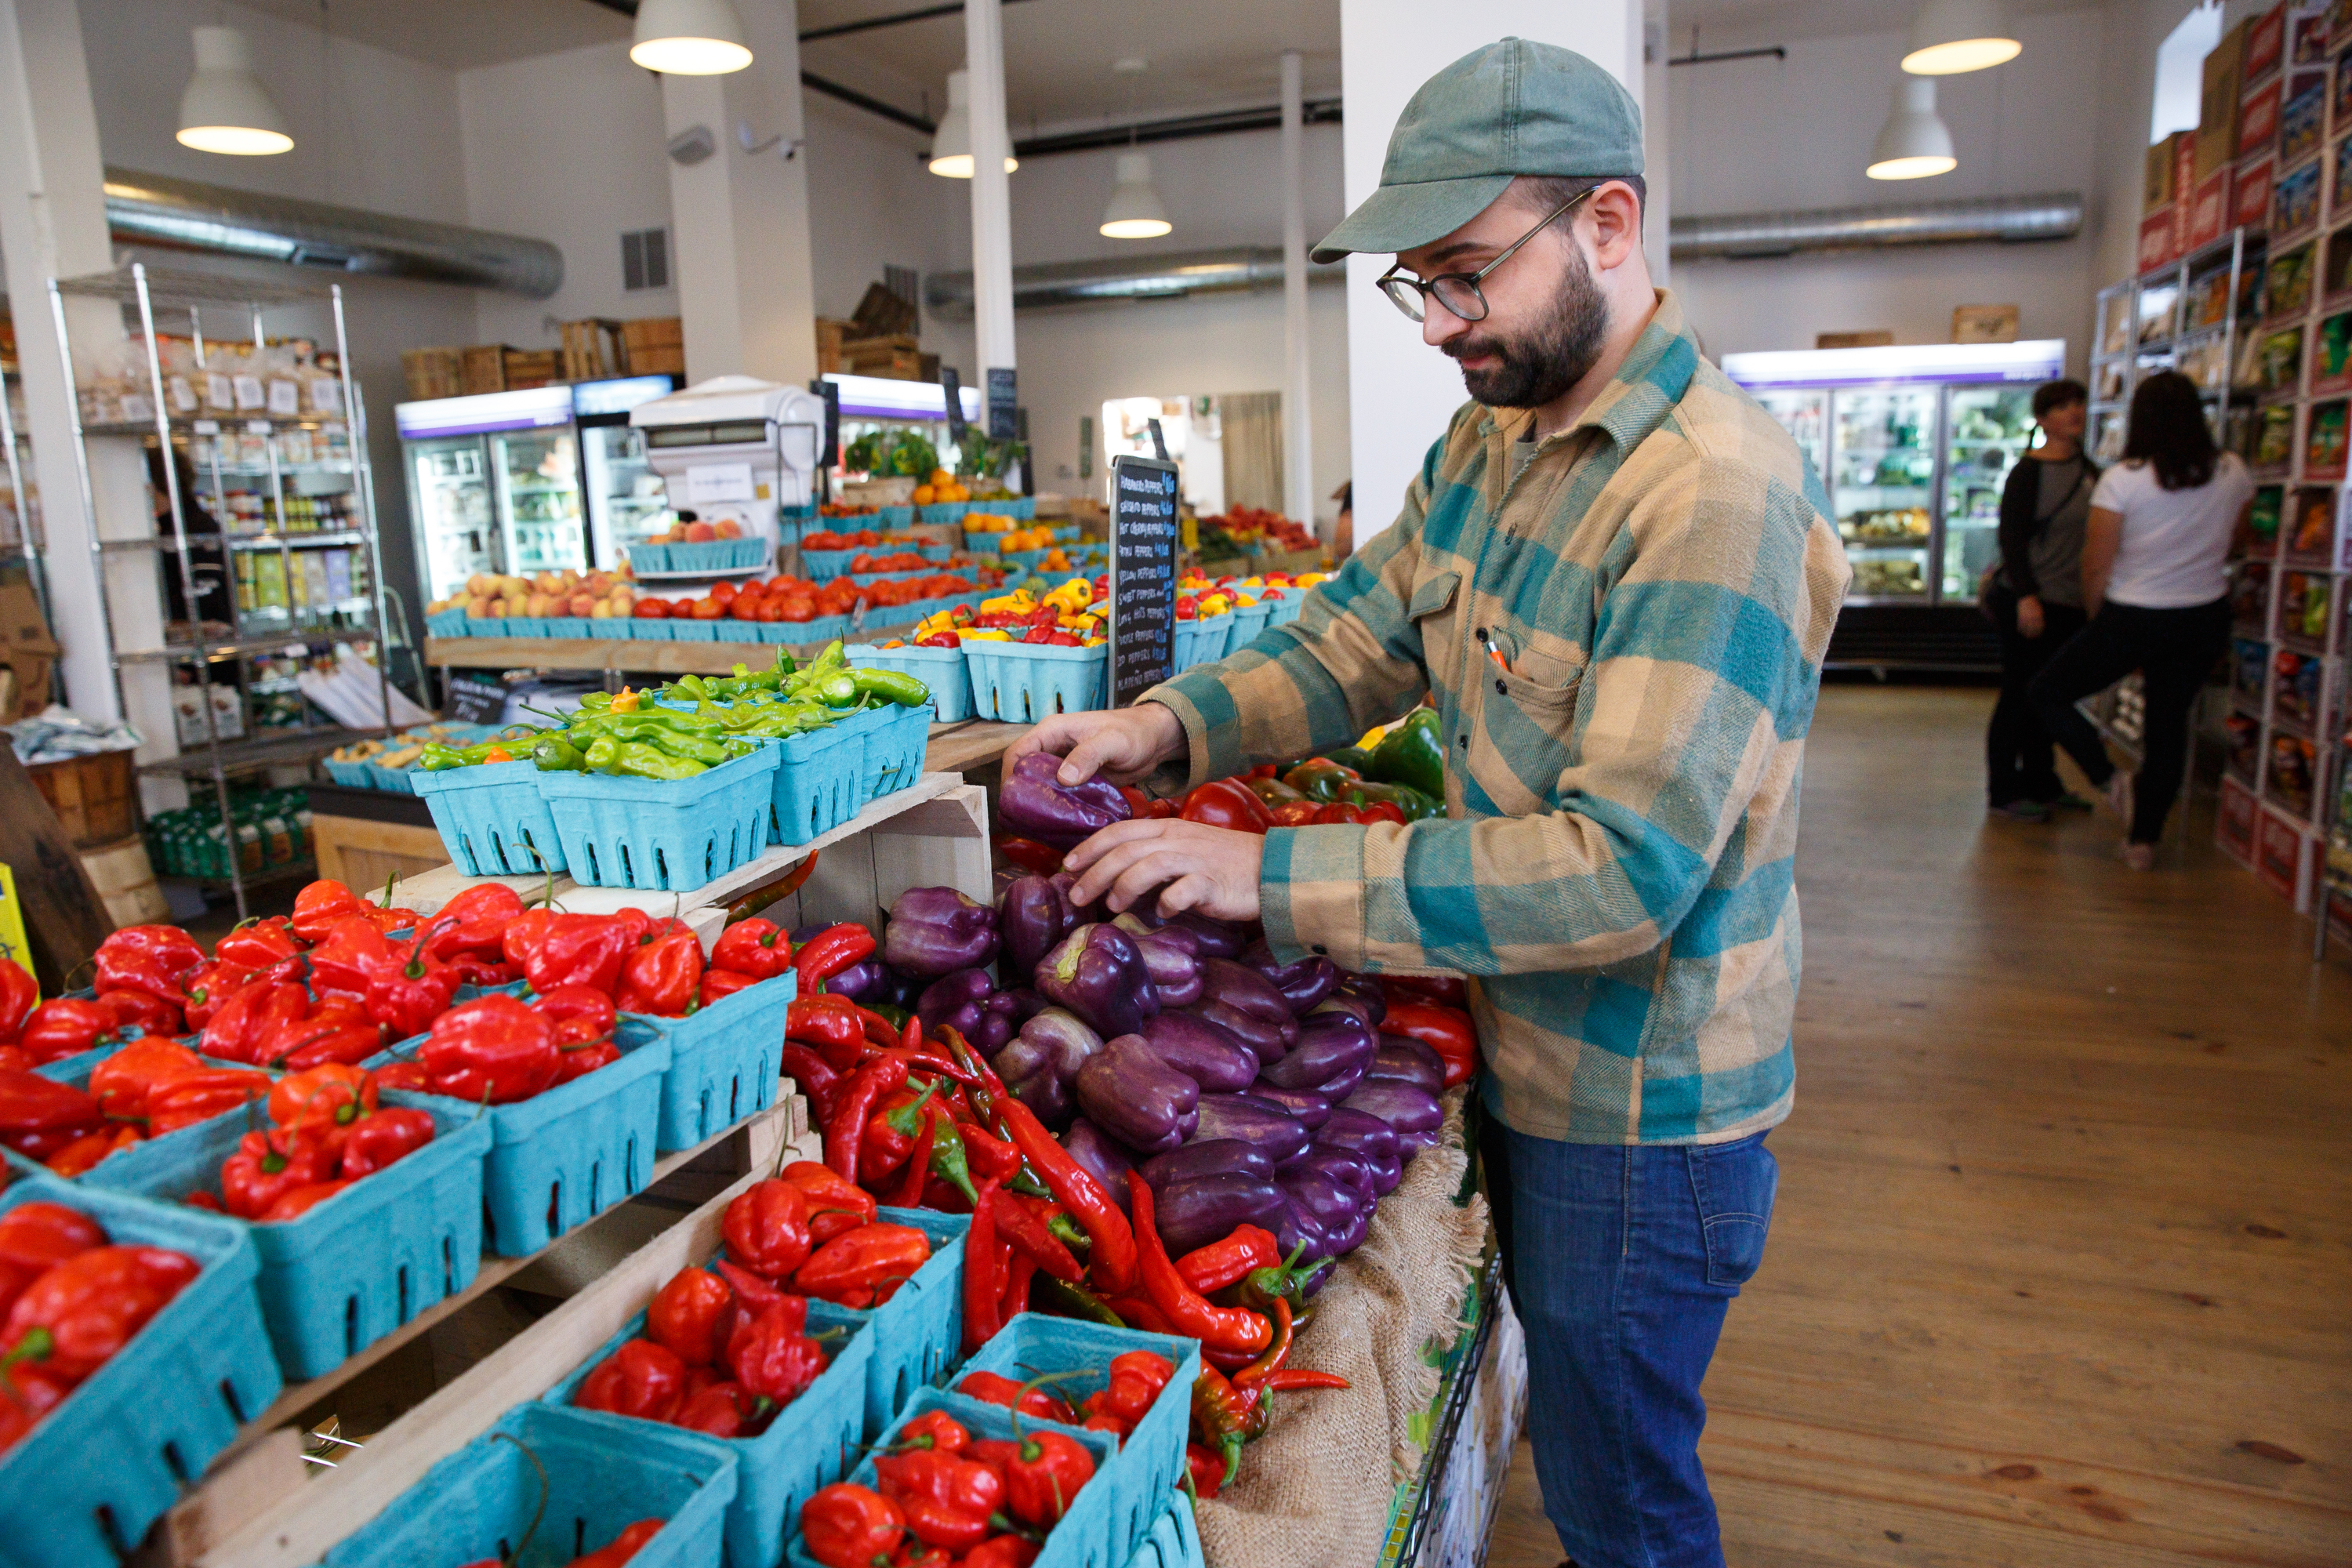 Riverwards produce Owner Vincent Finanzzo stacks produce in his store, in Philadelphia, Friday, Sept. 1, 2017. A number of shops, CSAs and delivery services that sell fresh organic produce are popping up to meet an increased demand.